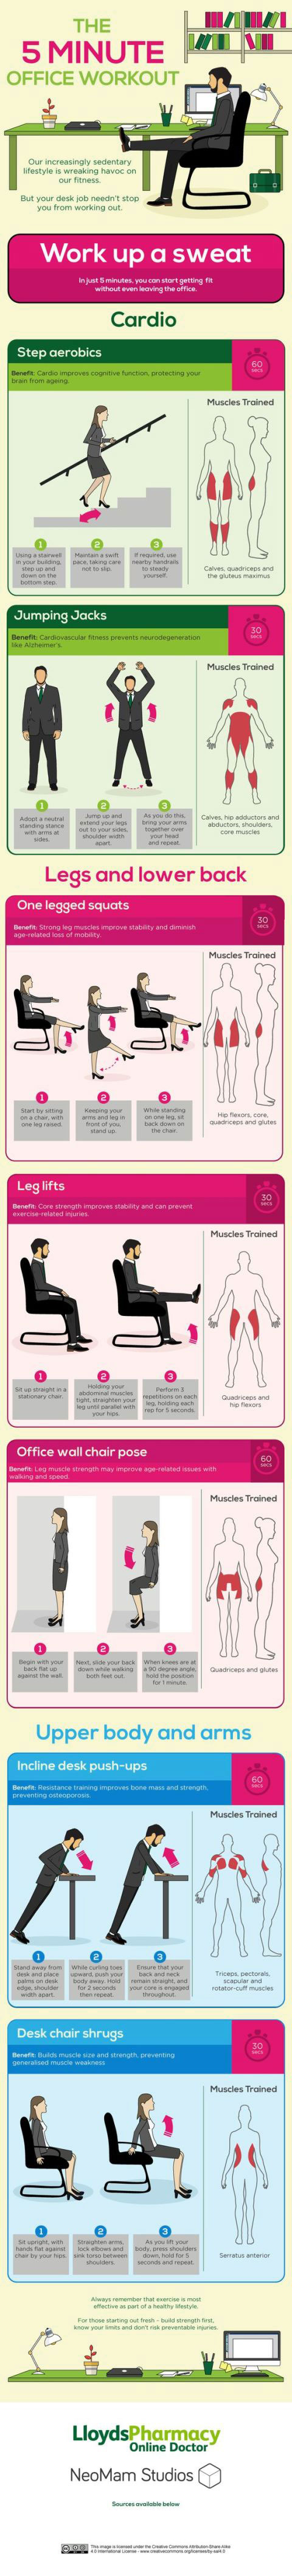 5-minute-office-workout-simple-no-equipment